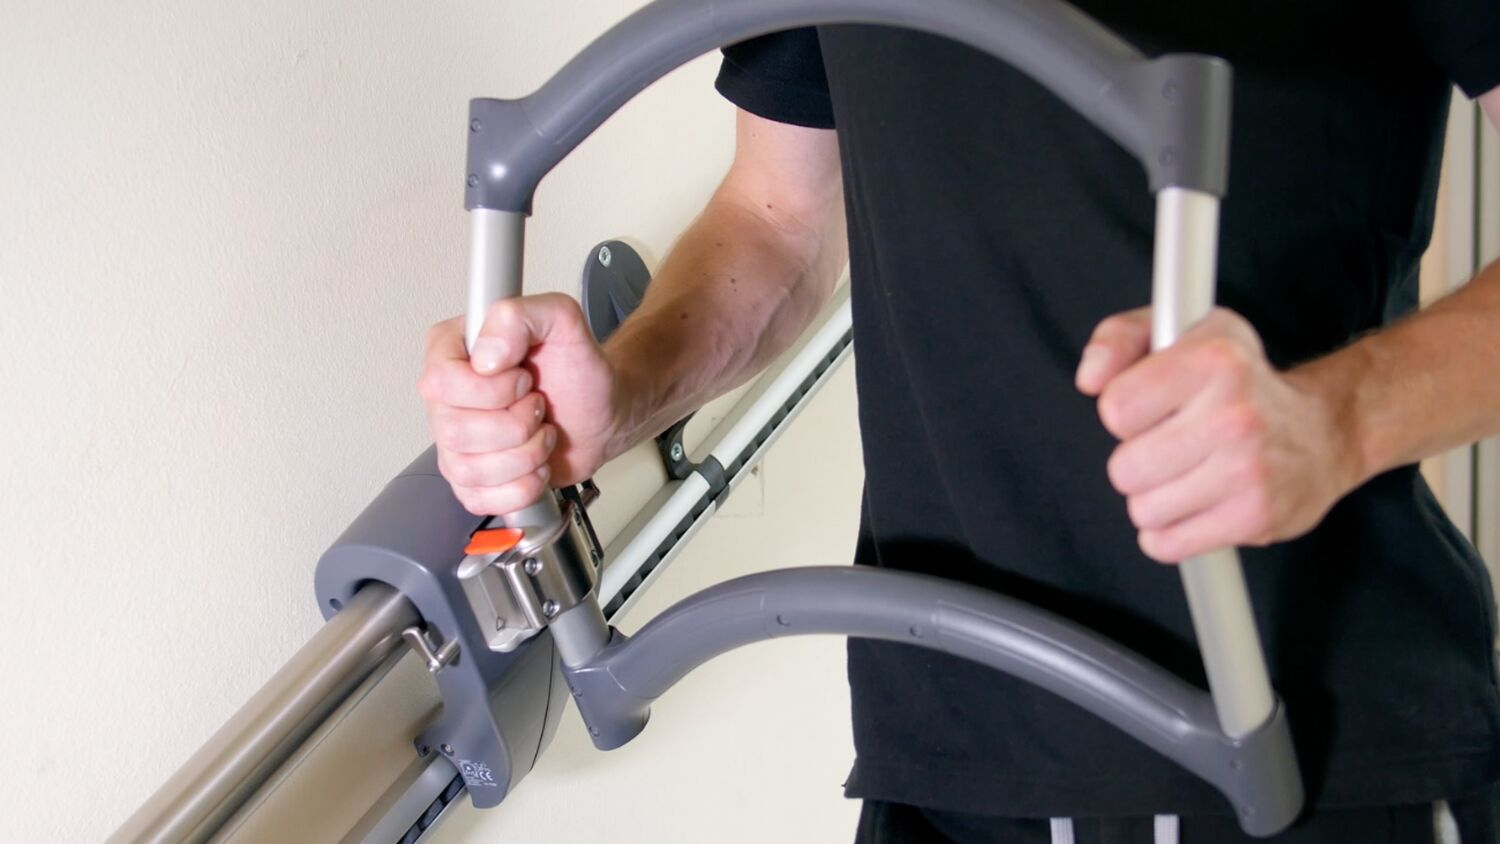 Holding the stairwalker AssiStep during rehabilitation from spinal cord injury